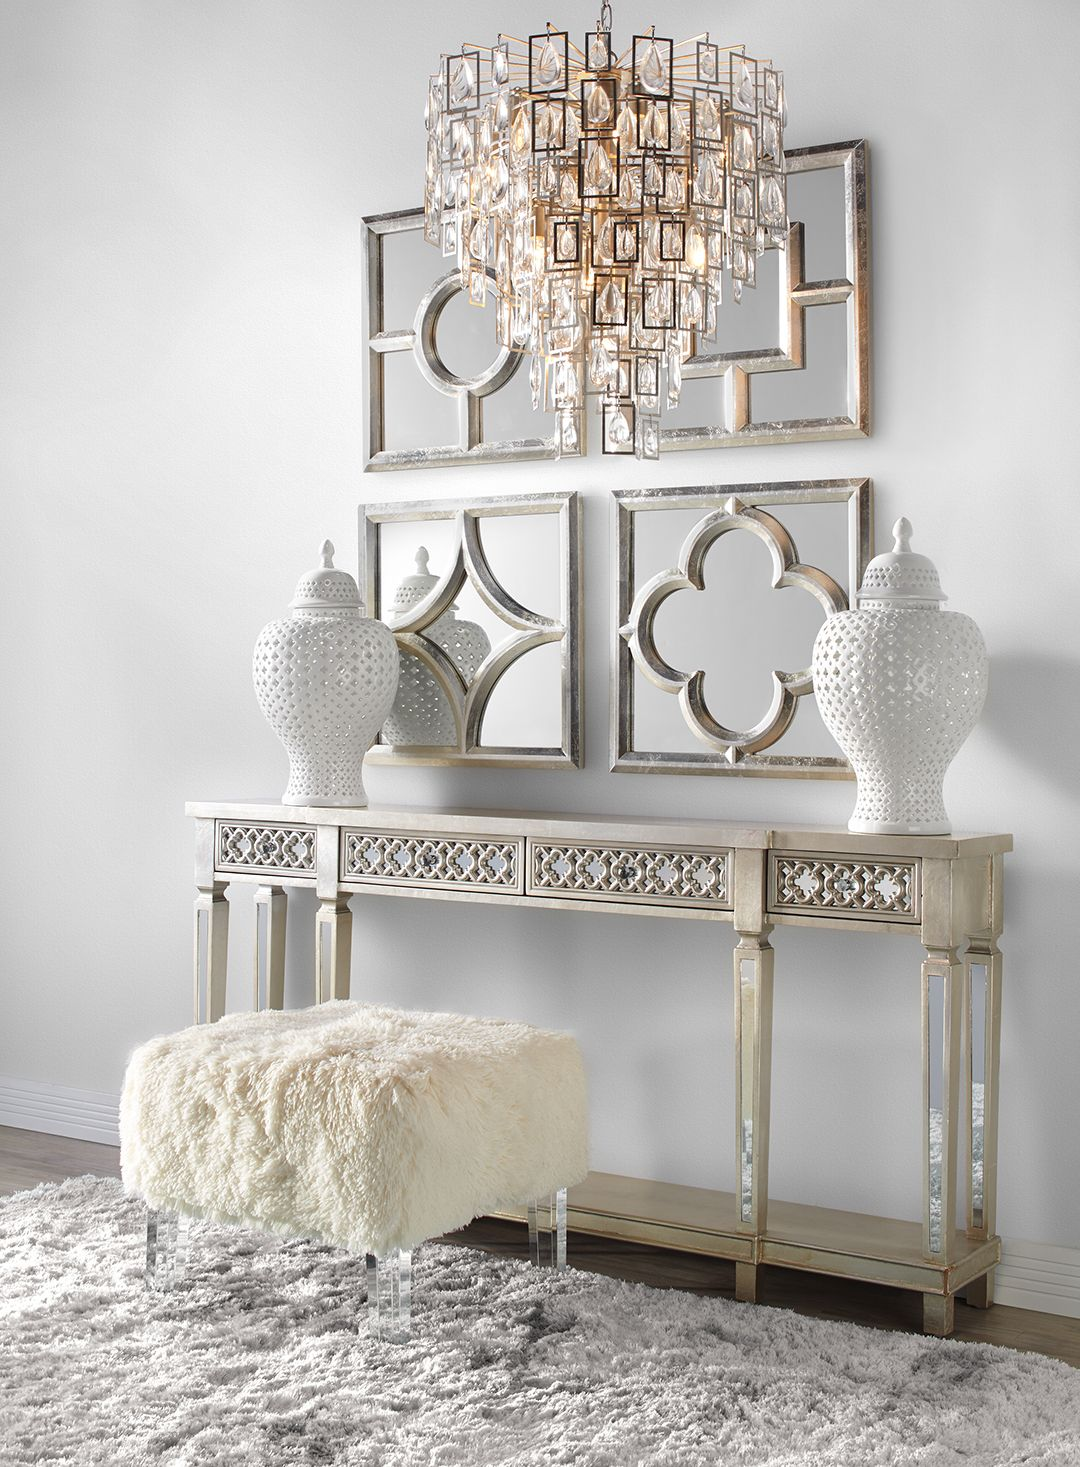 Entrance Decor Entry Foyer And Foyers: MARCH 2017 FASHION FOR THE HOME